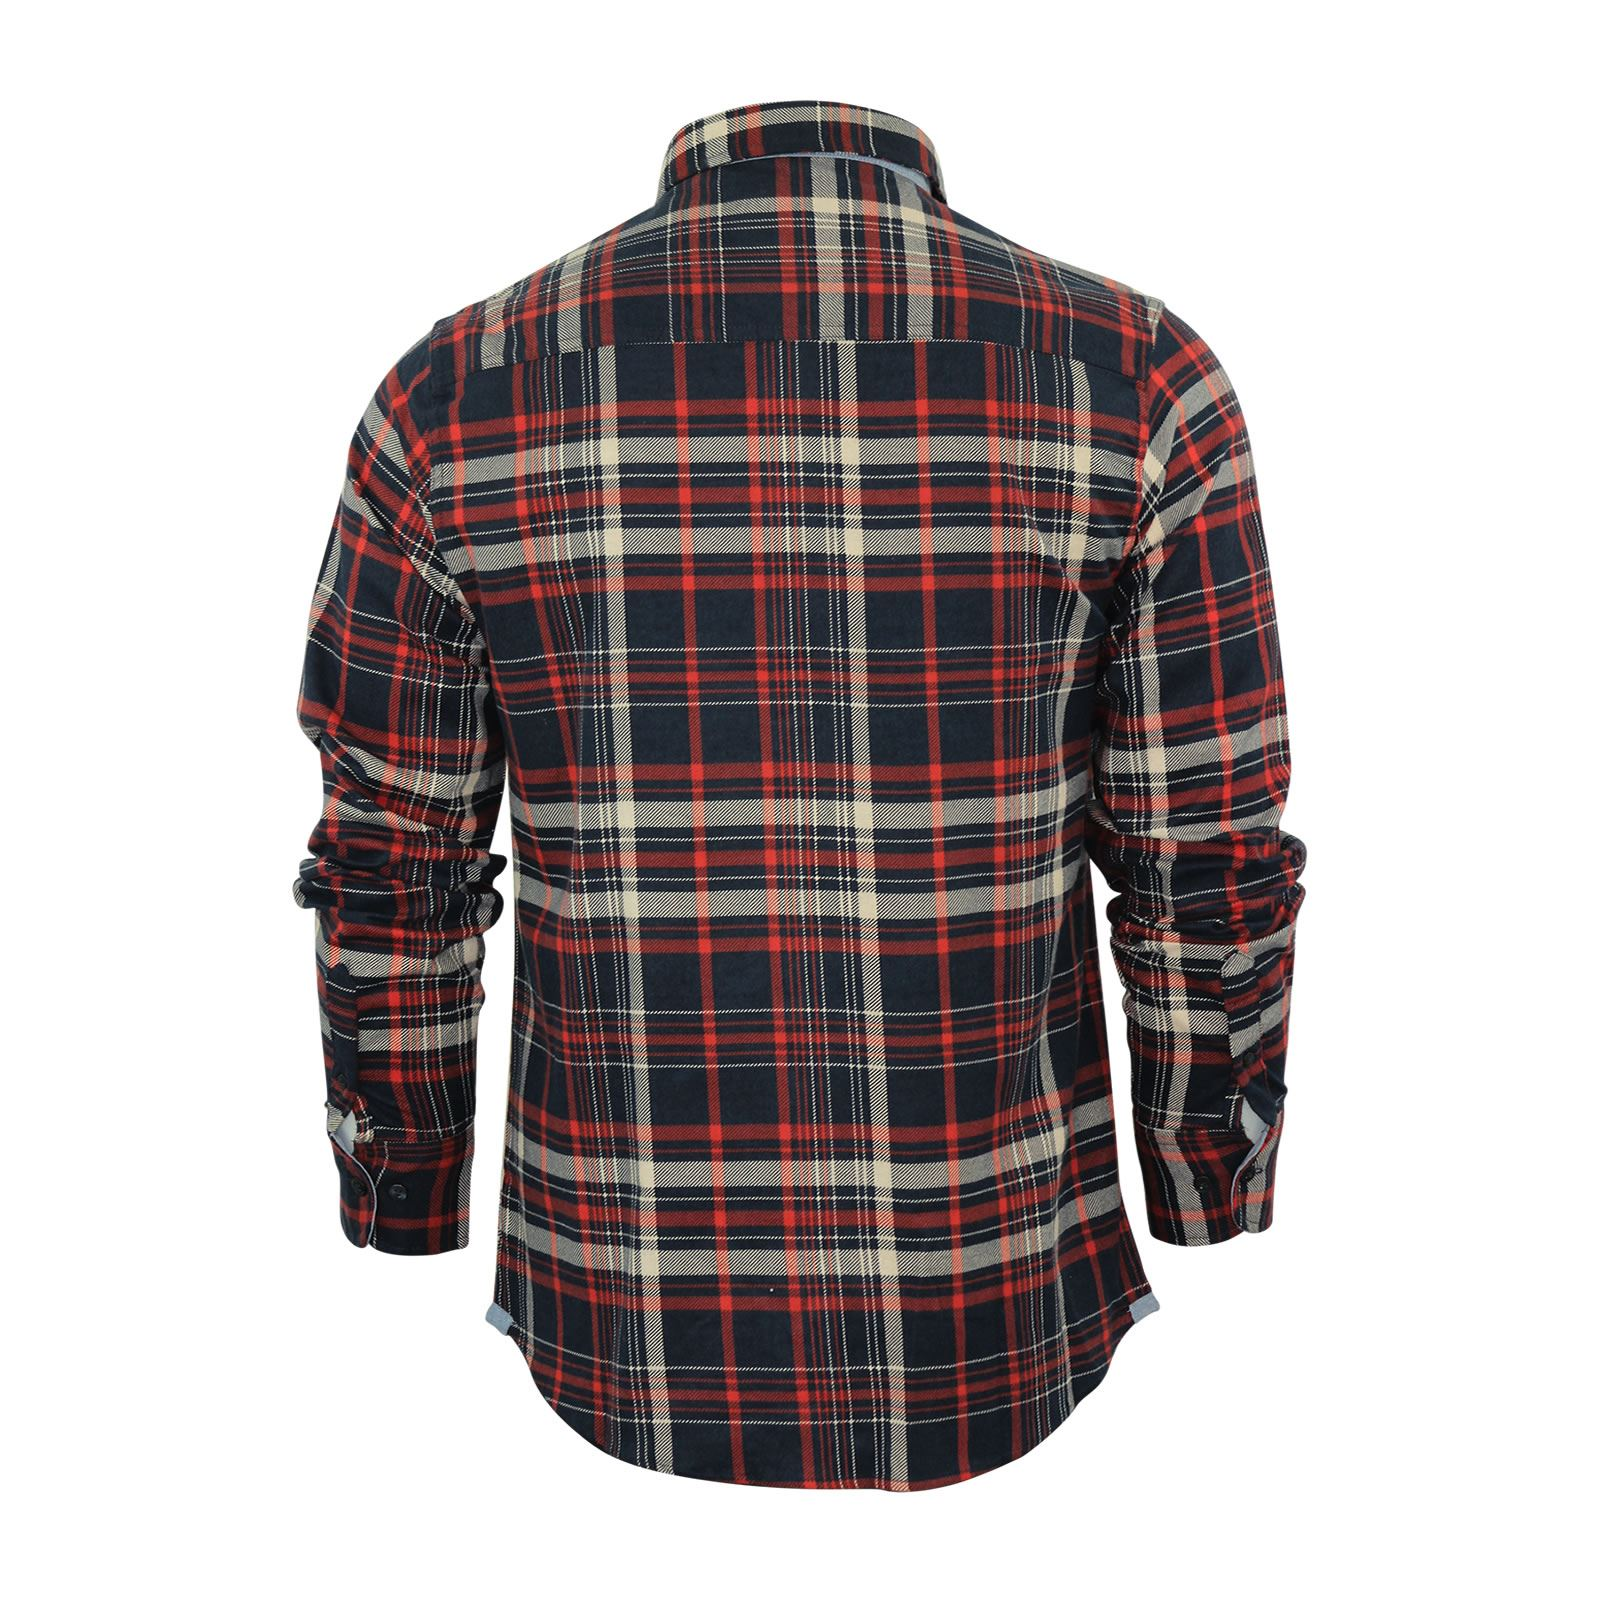 Mens-Check-Shirt-Brave-Soul-Flannel-Brushed-Cotton-Long-Sleeve-Casual-Top thumbnail 36